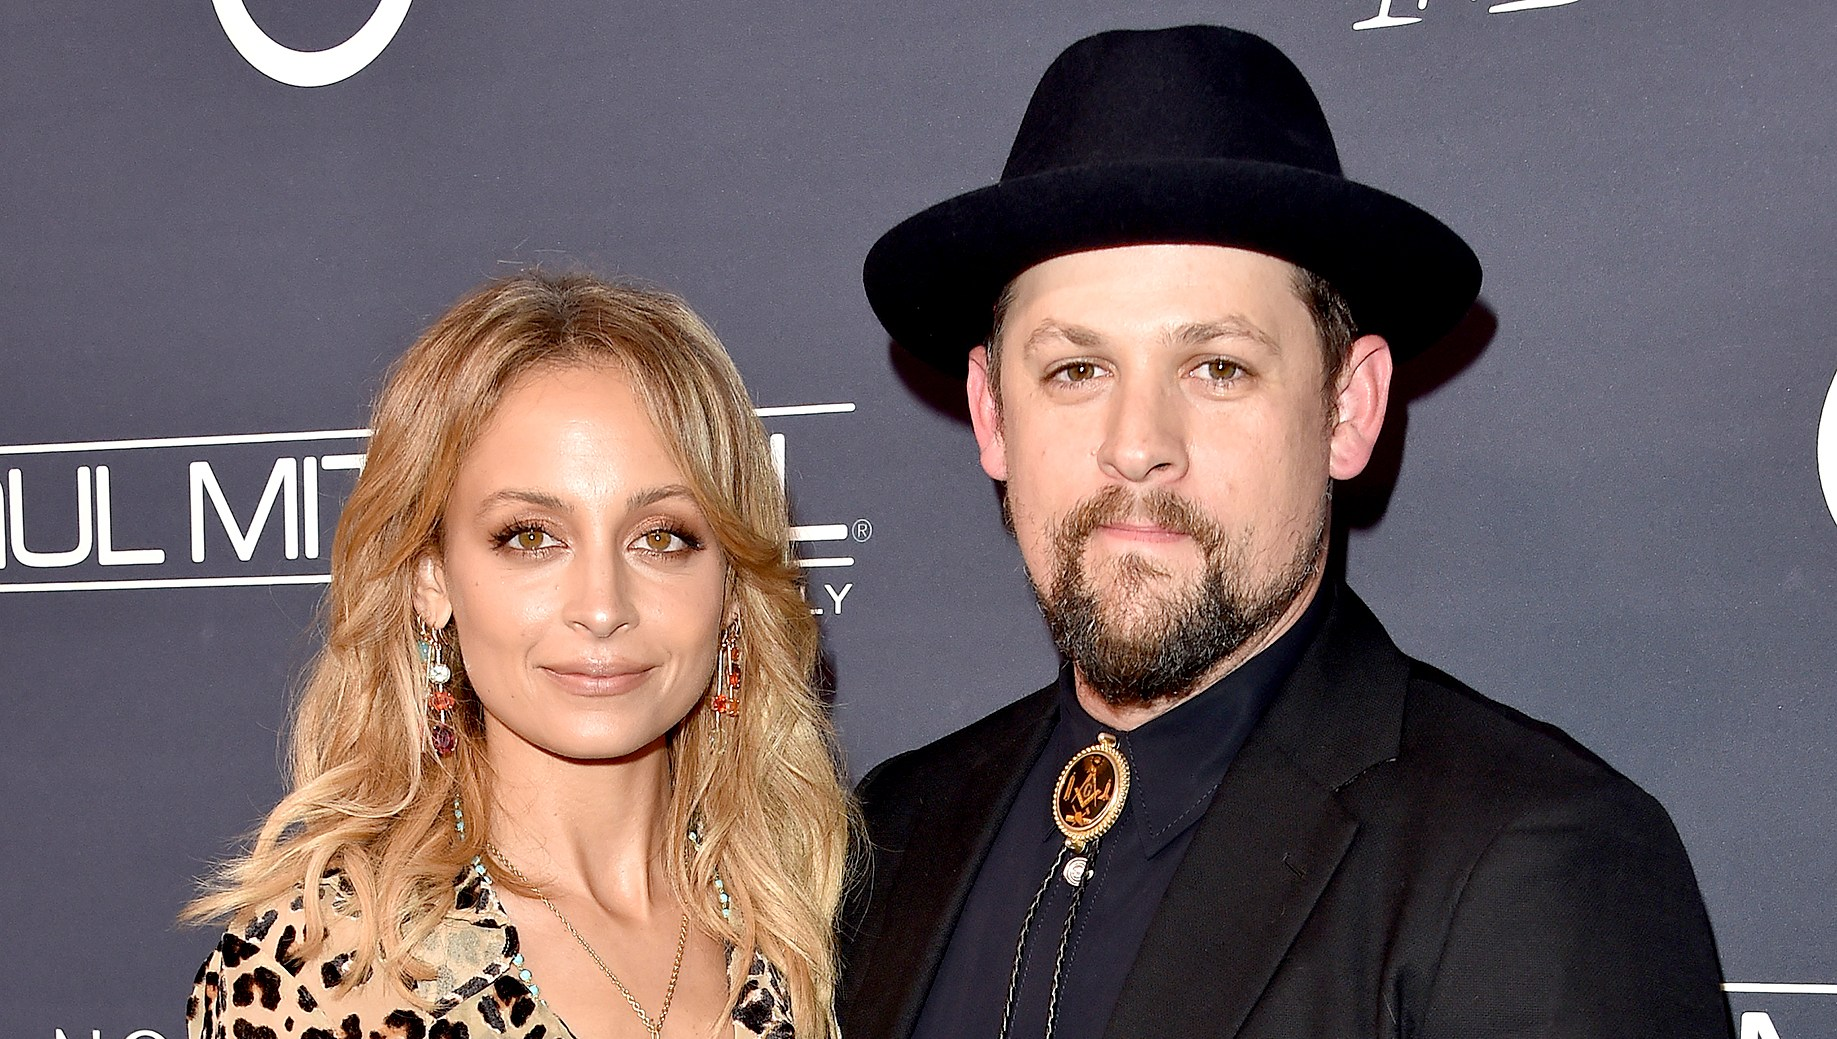 Nicole Richie Celebrates Husband Joel Madden's 40th Birthday With Adorable Throwback Pic: 'My Best Friend for Life'